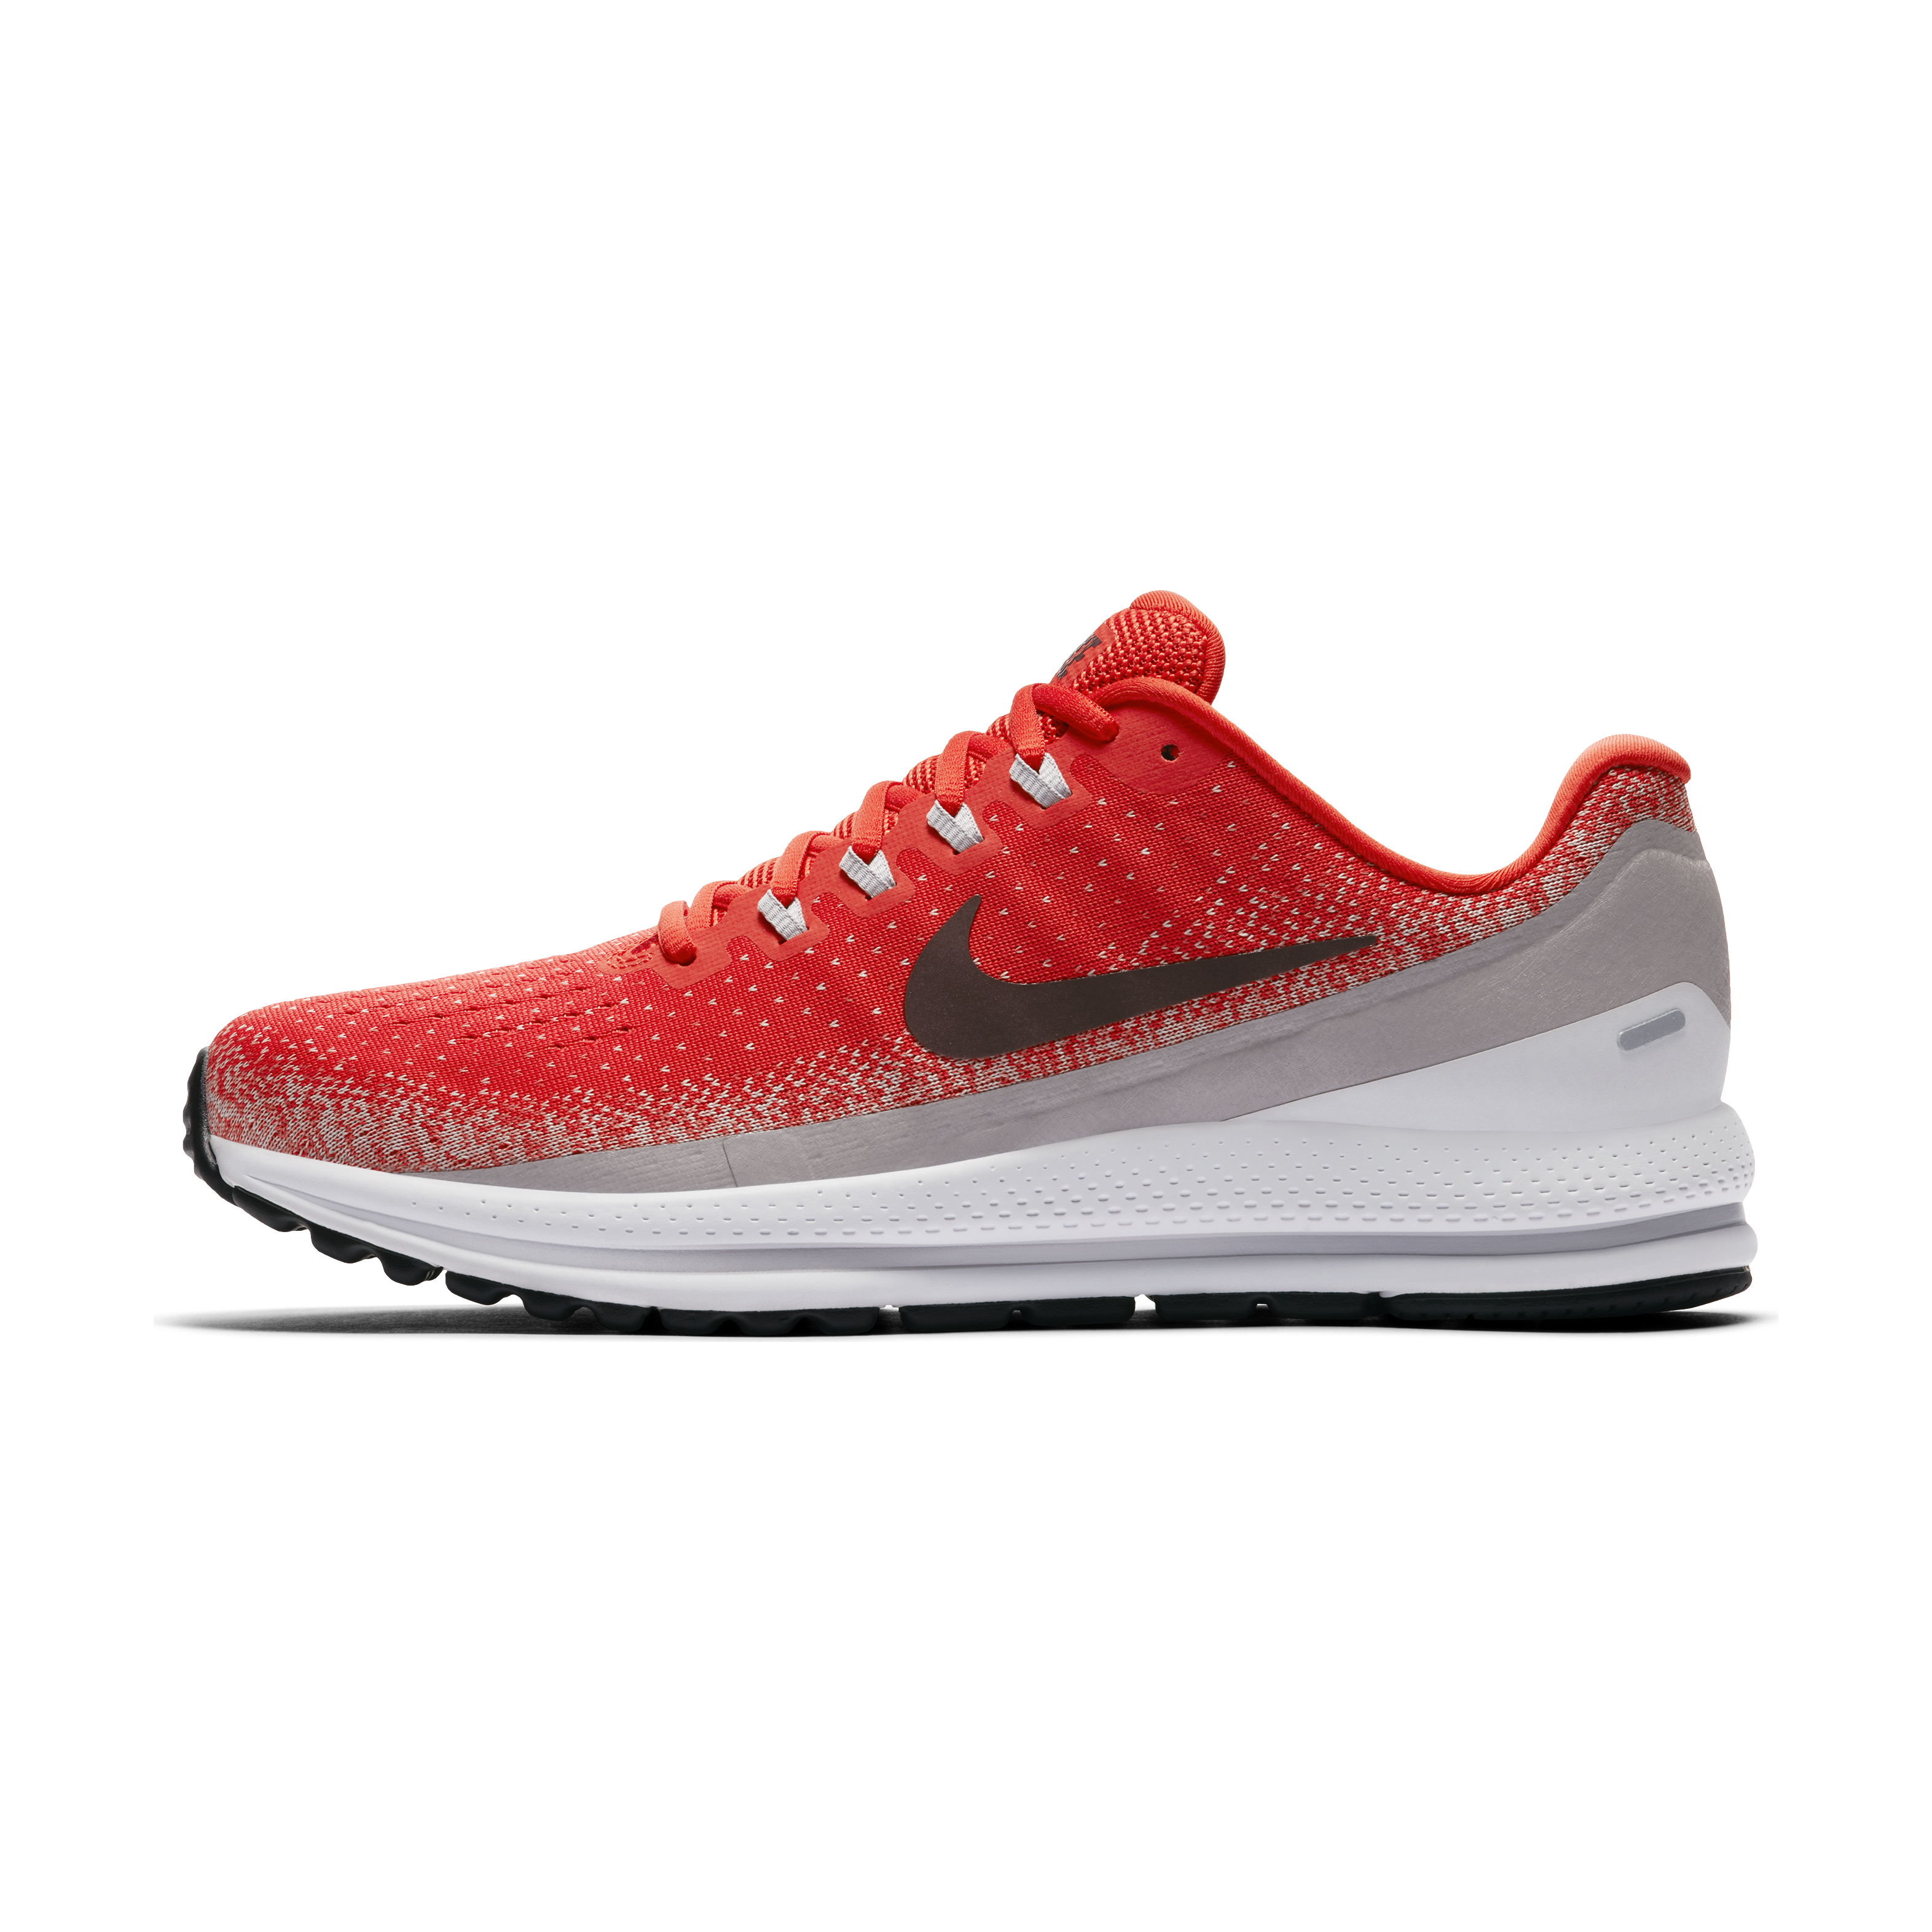 Nike Zoom Vomero Aire 13 Hombres Reebok IRhlS